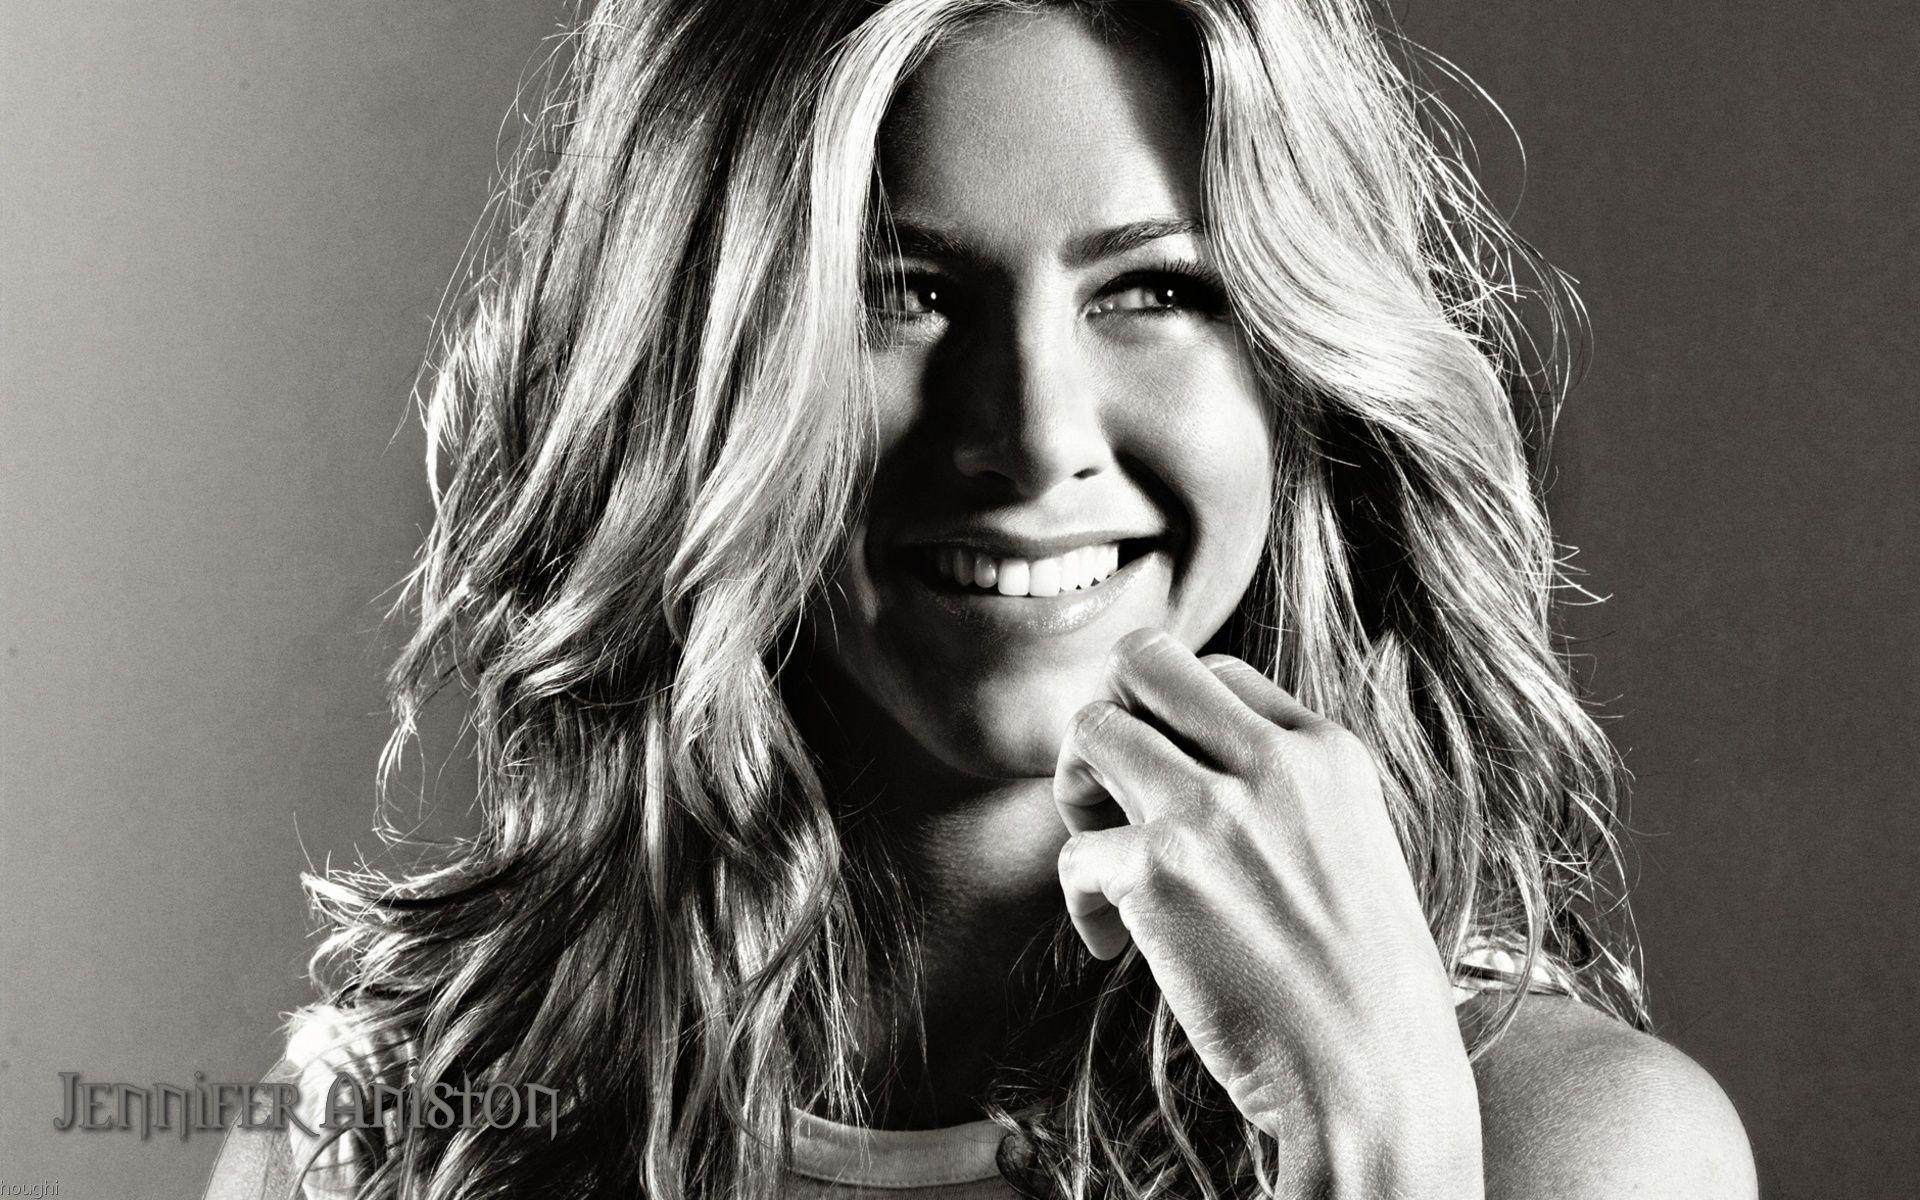 Jennifer Aniston Wallpapers Images Photos Pictures Backgrounds